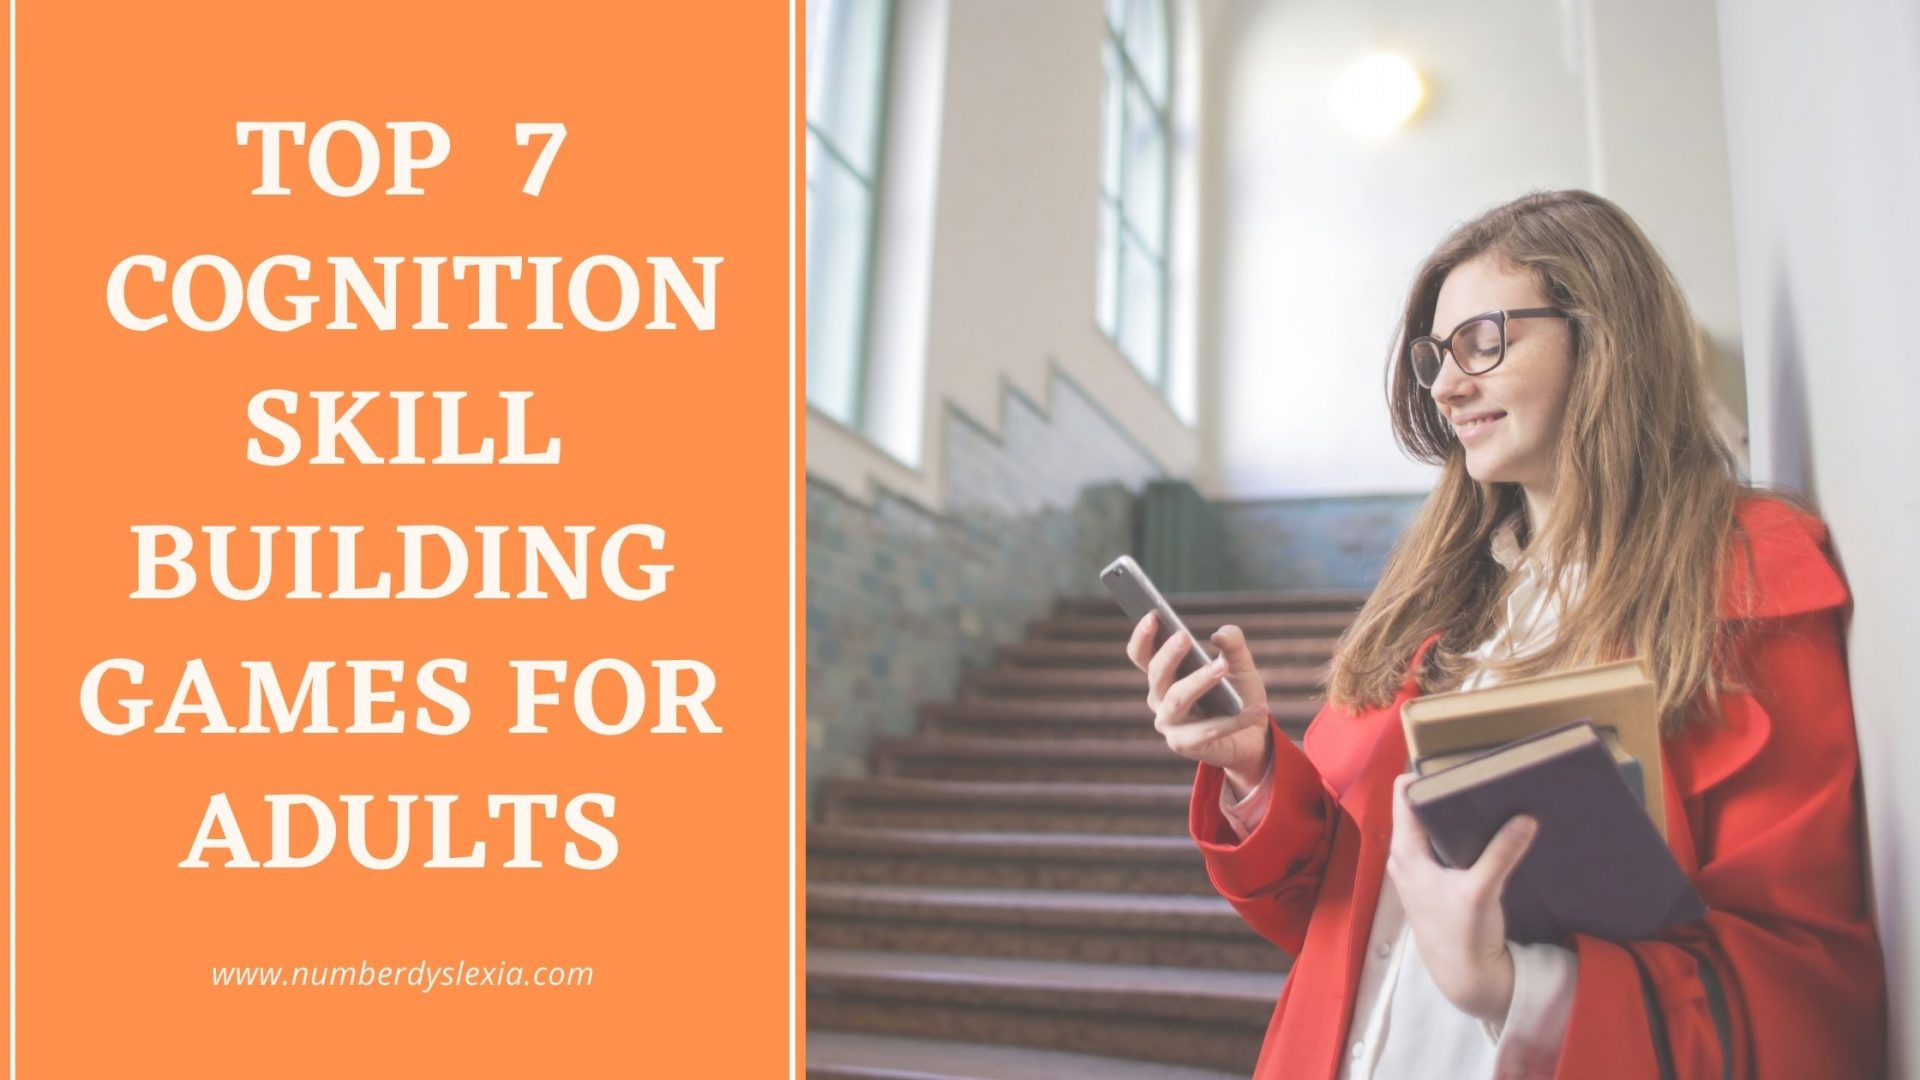 List of top 7 cognition skill building online games for adults